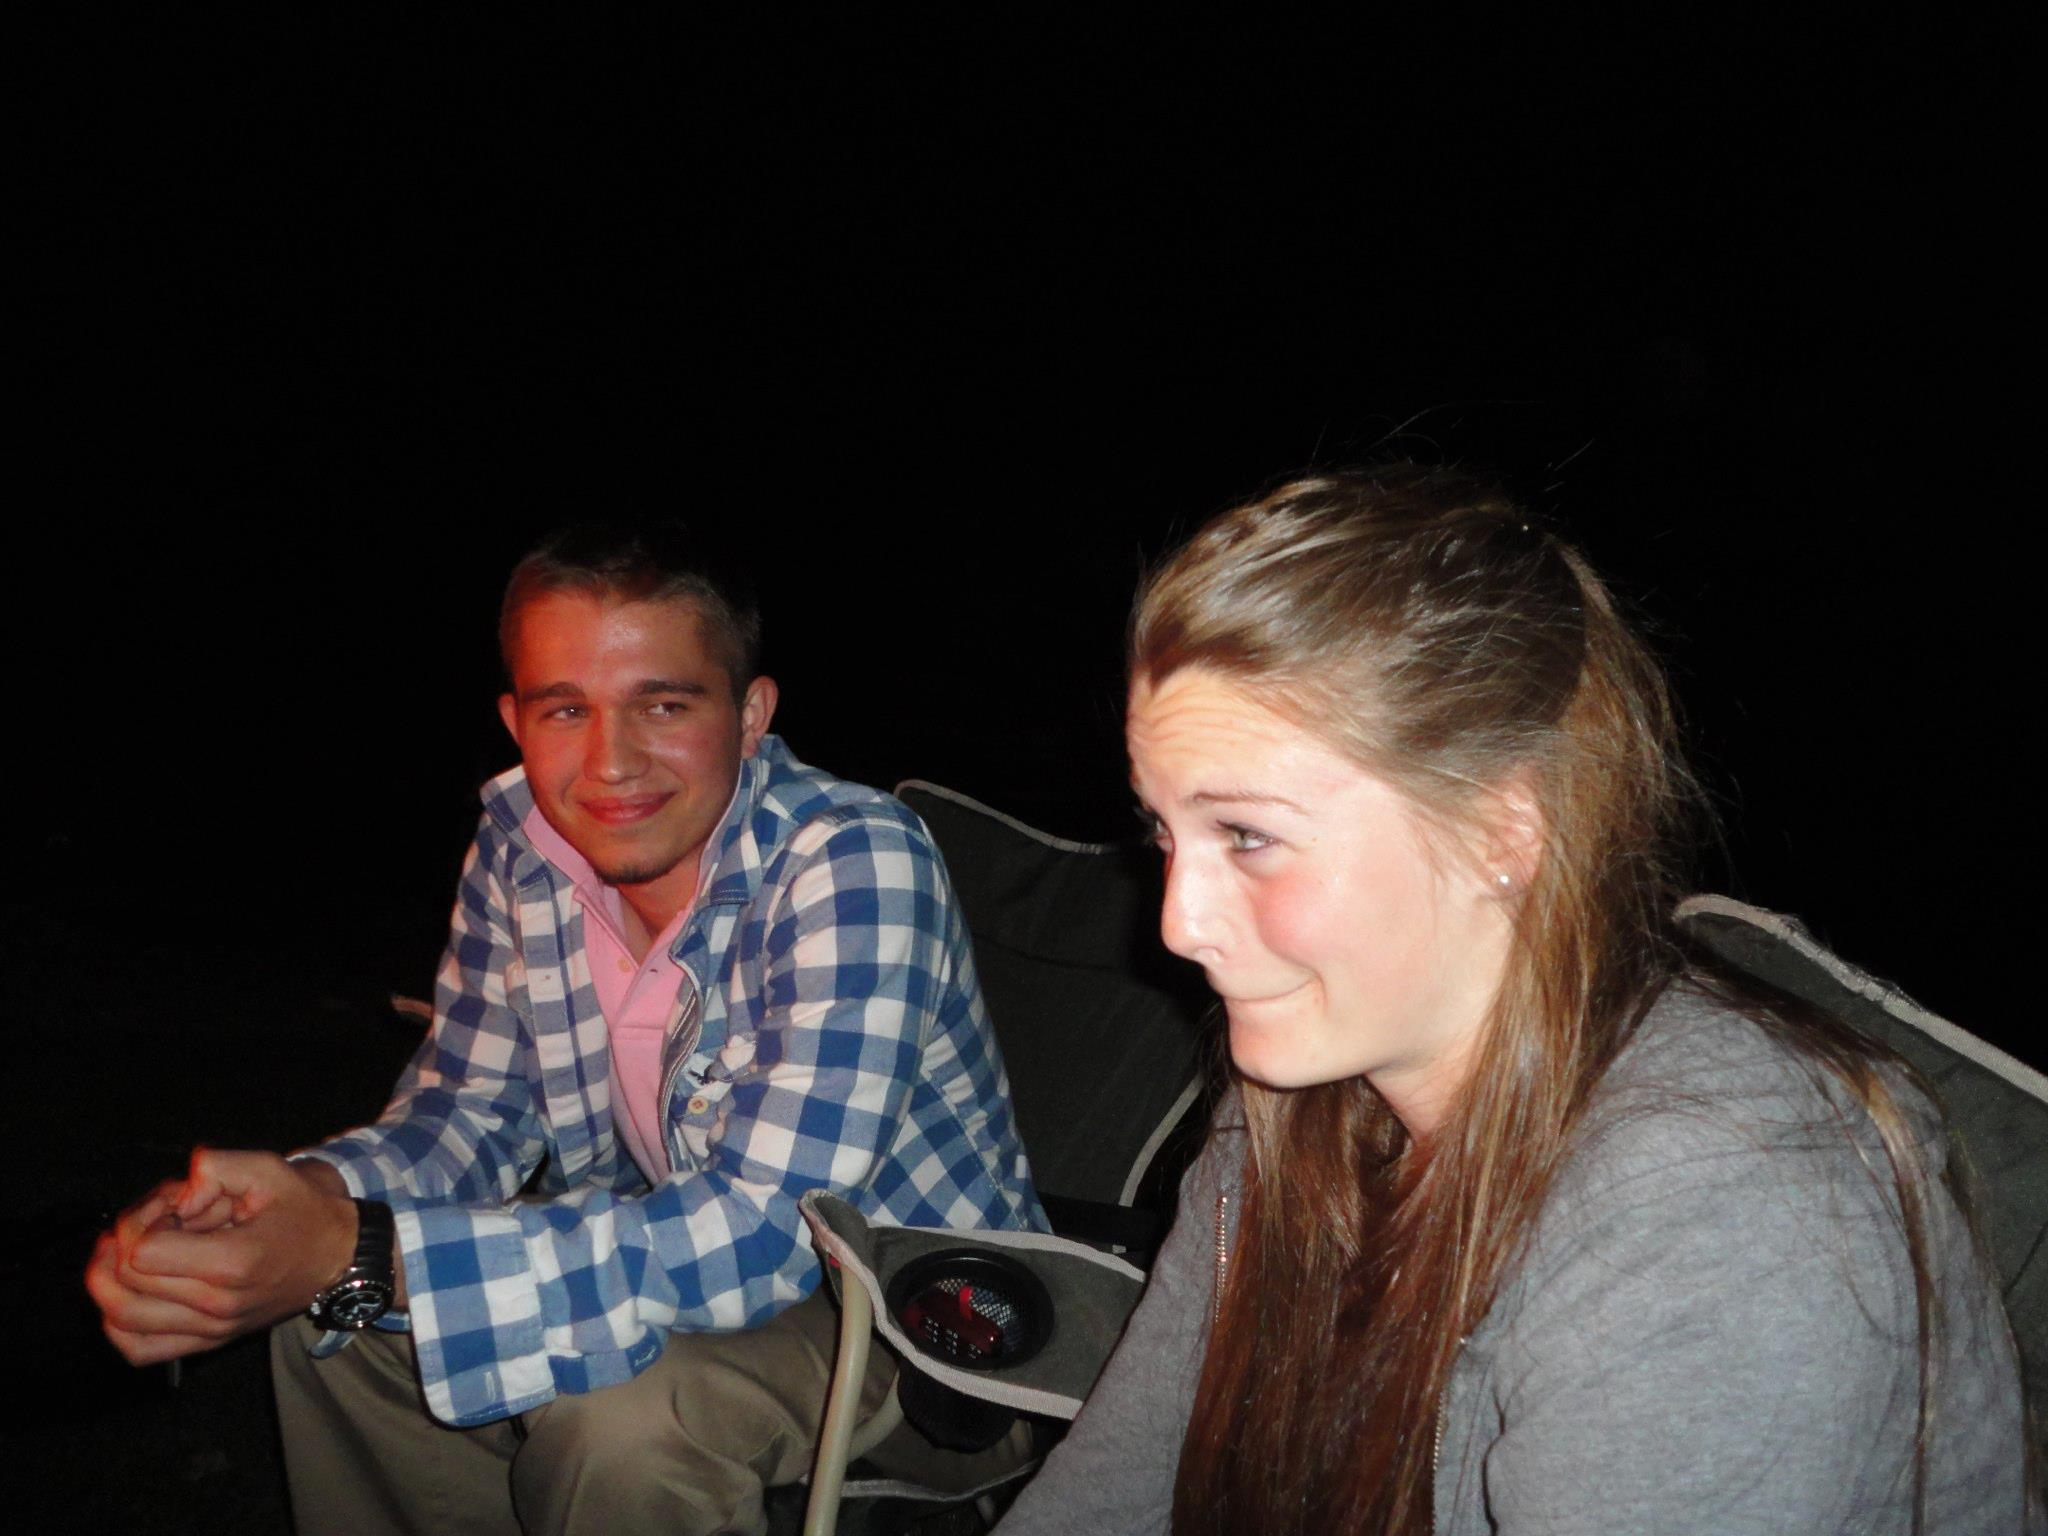 B and I at a bonfire before we were dating, just hanging out.